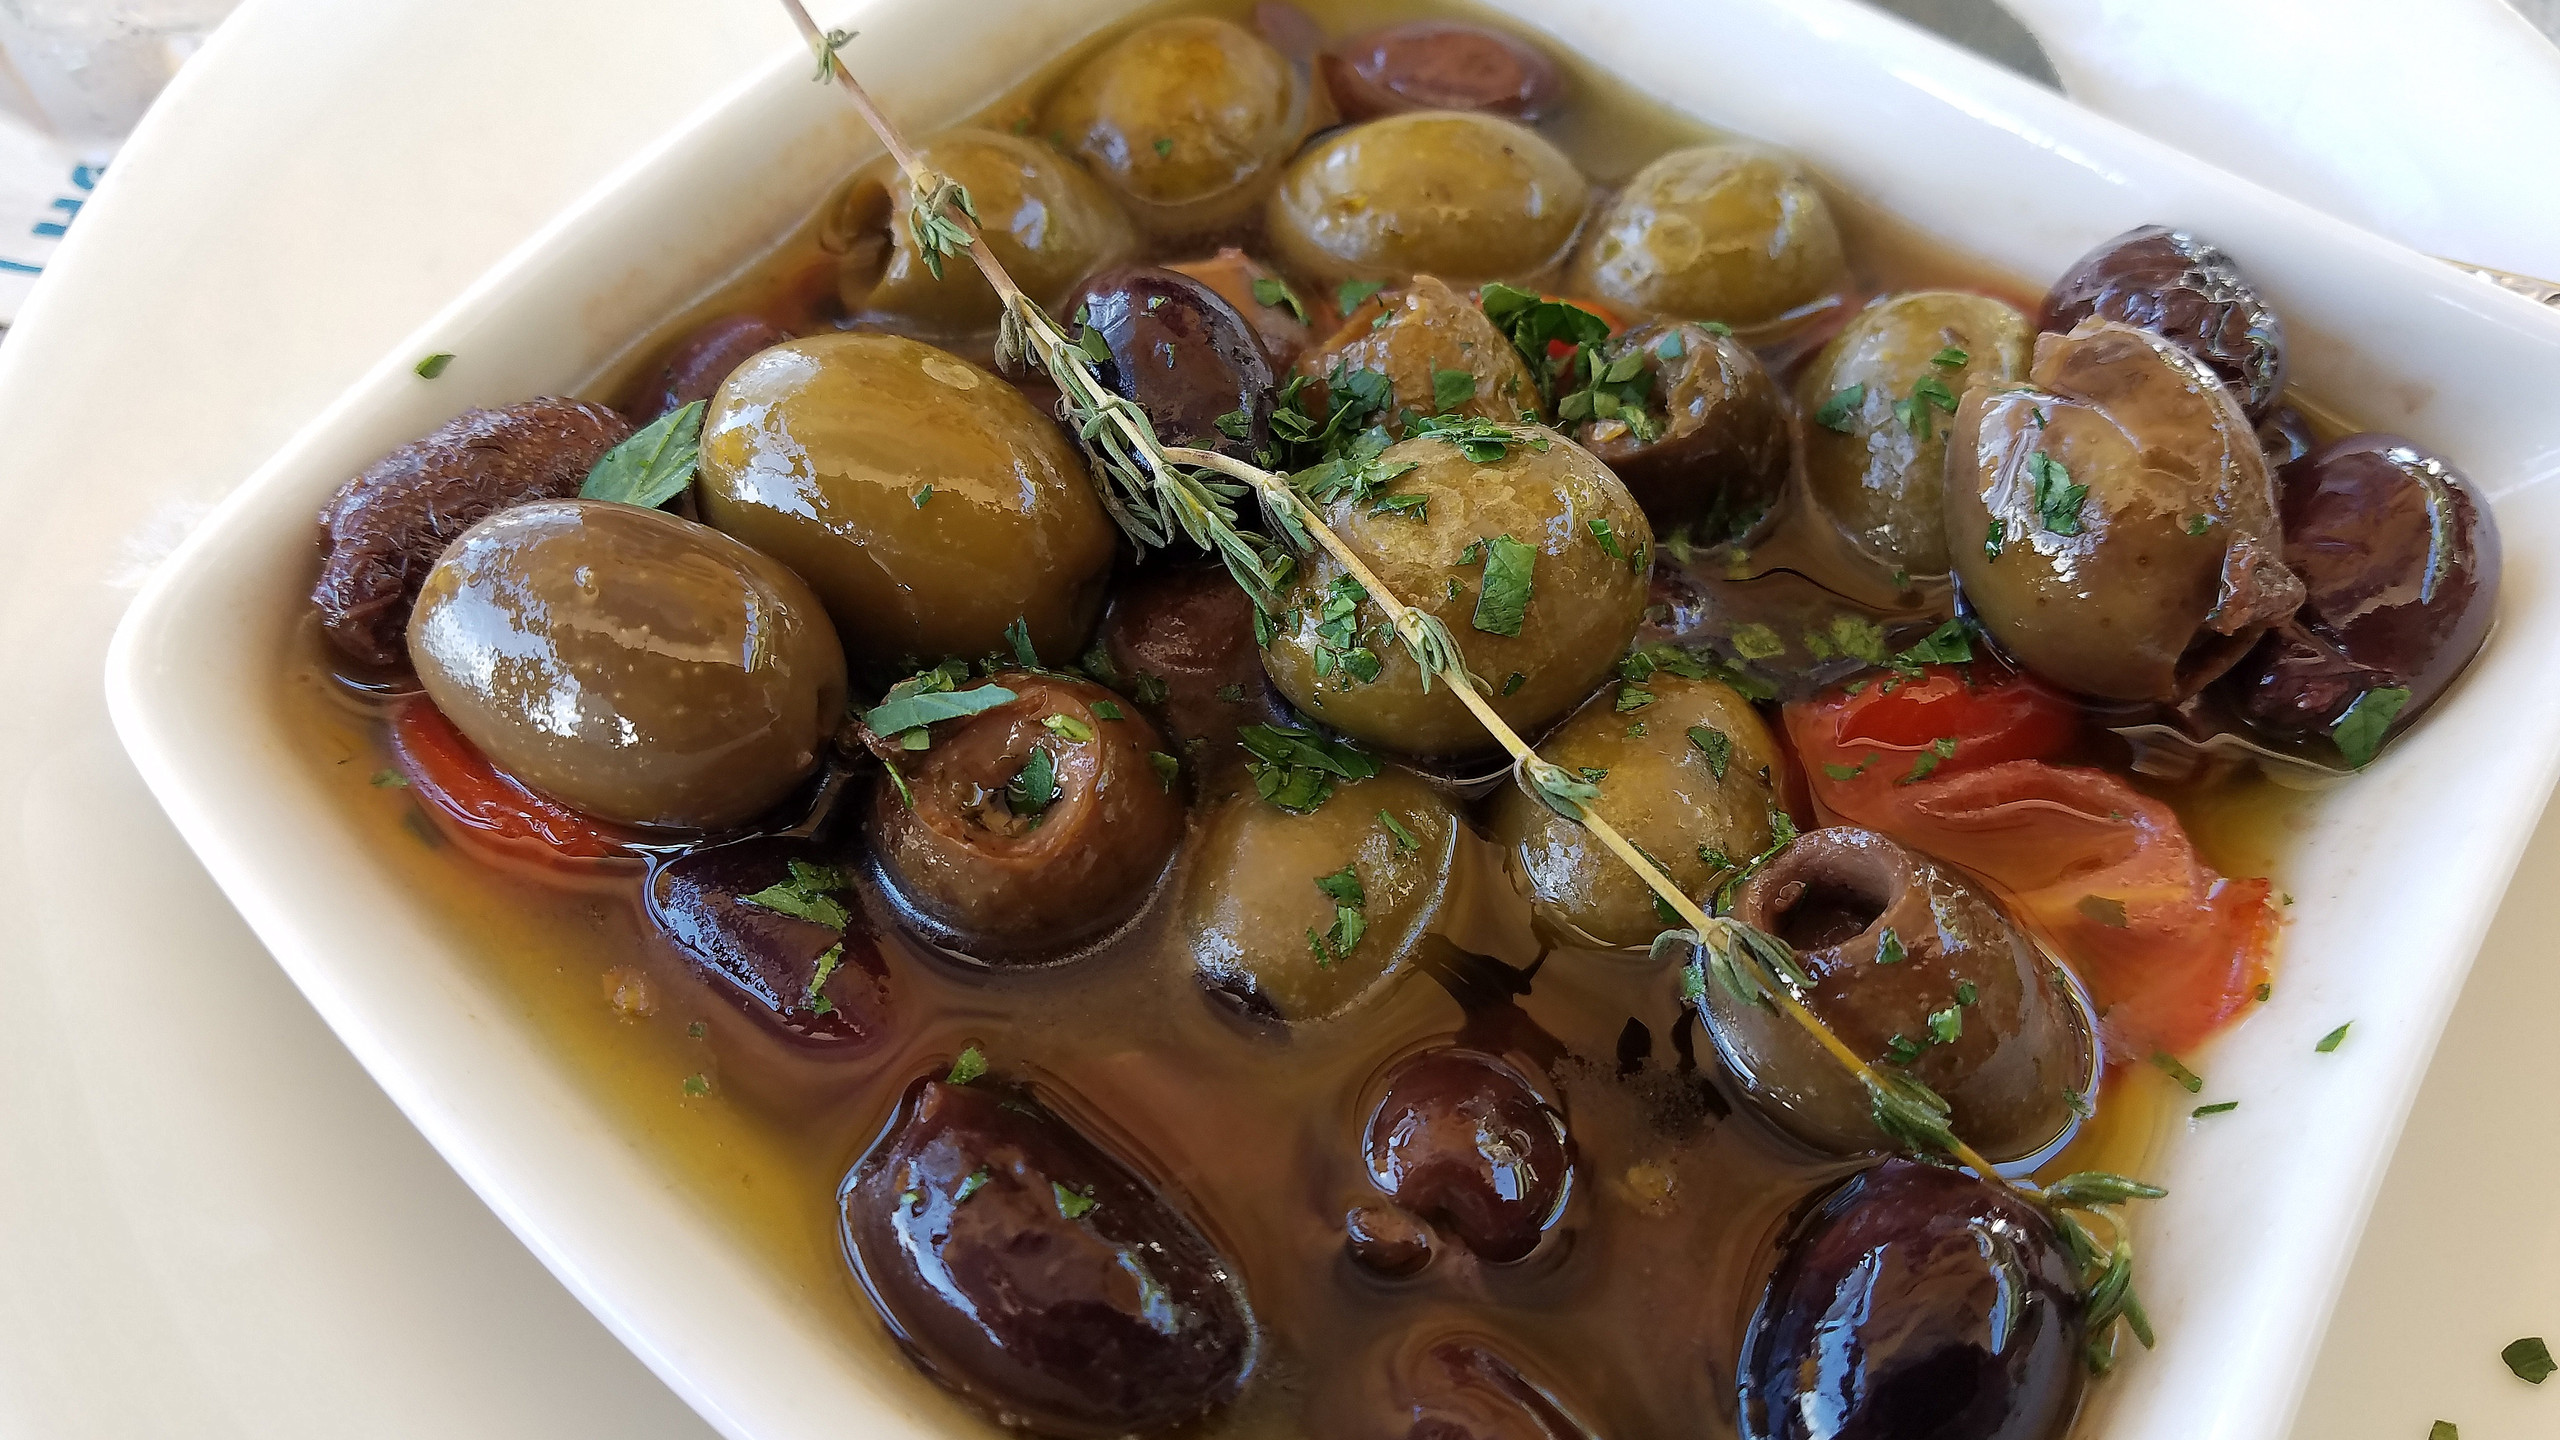 Delicious Warm Olives